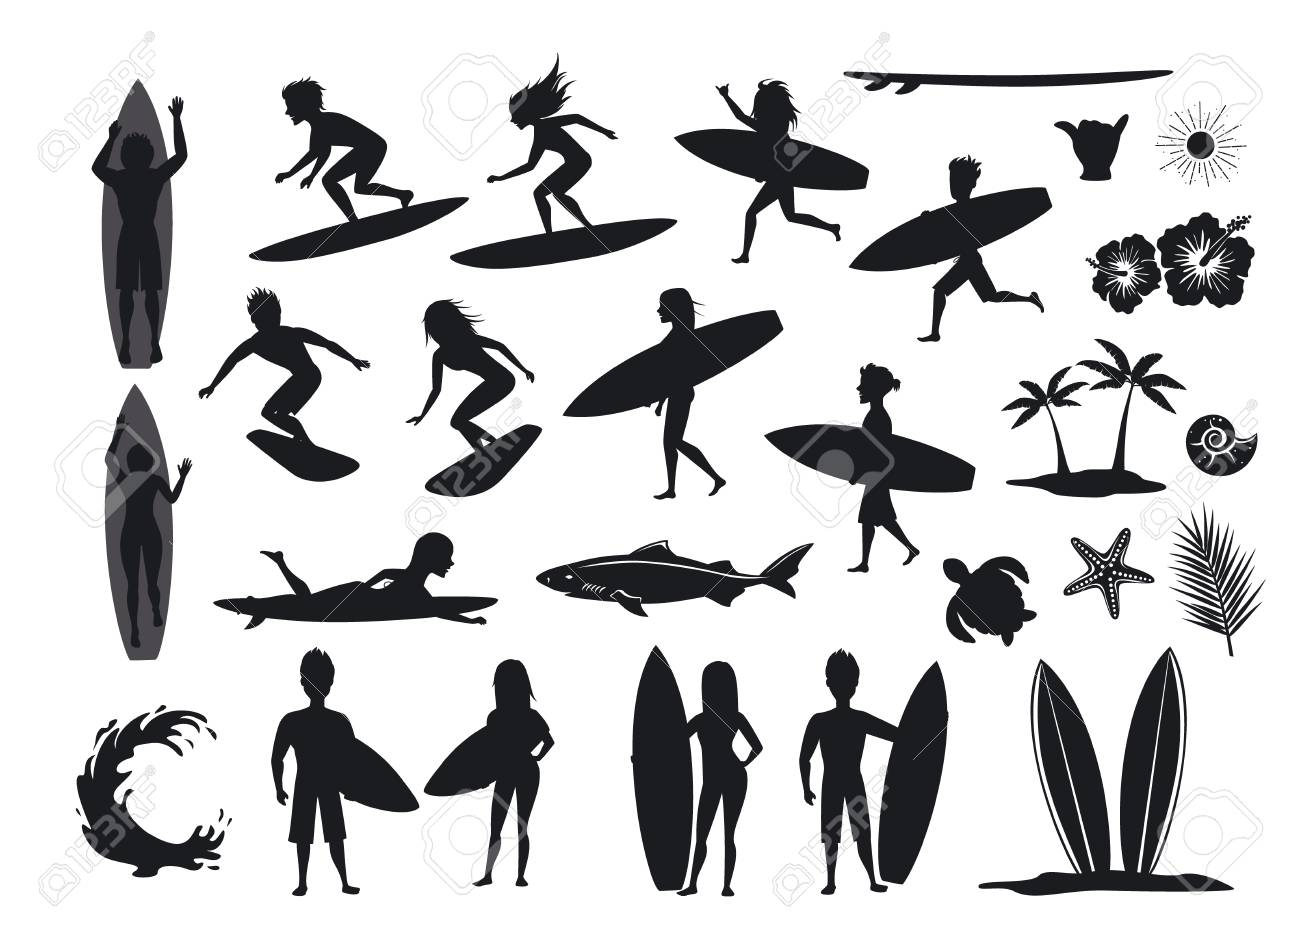 Surfers Silhouettes Set Men And Women Surfing Riding Waves